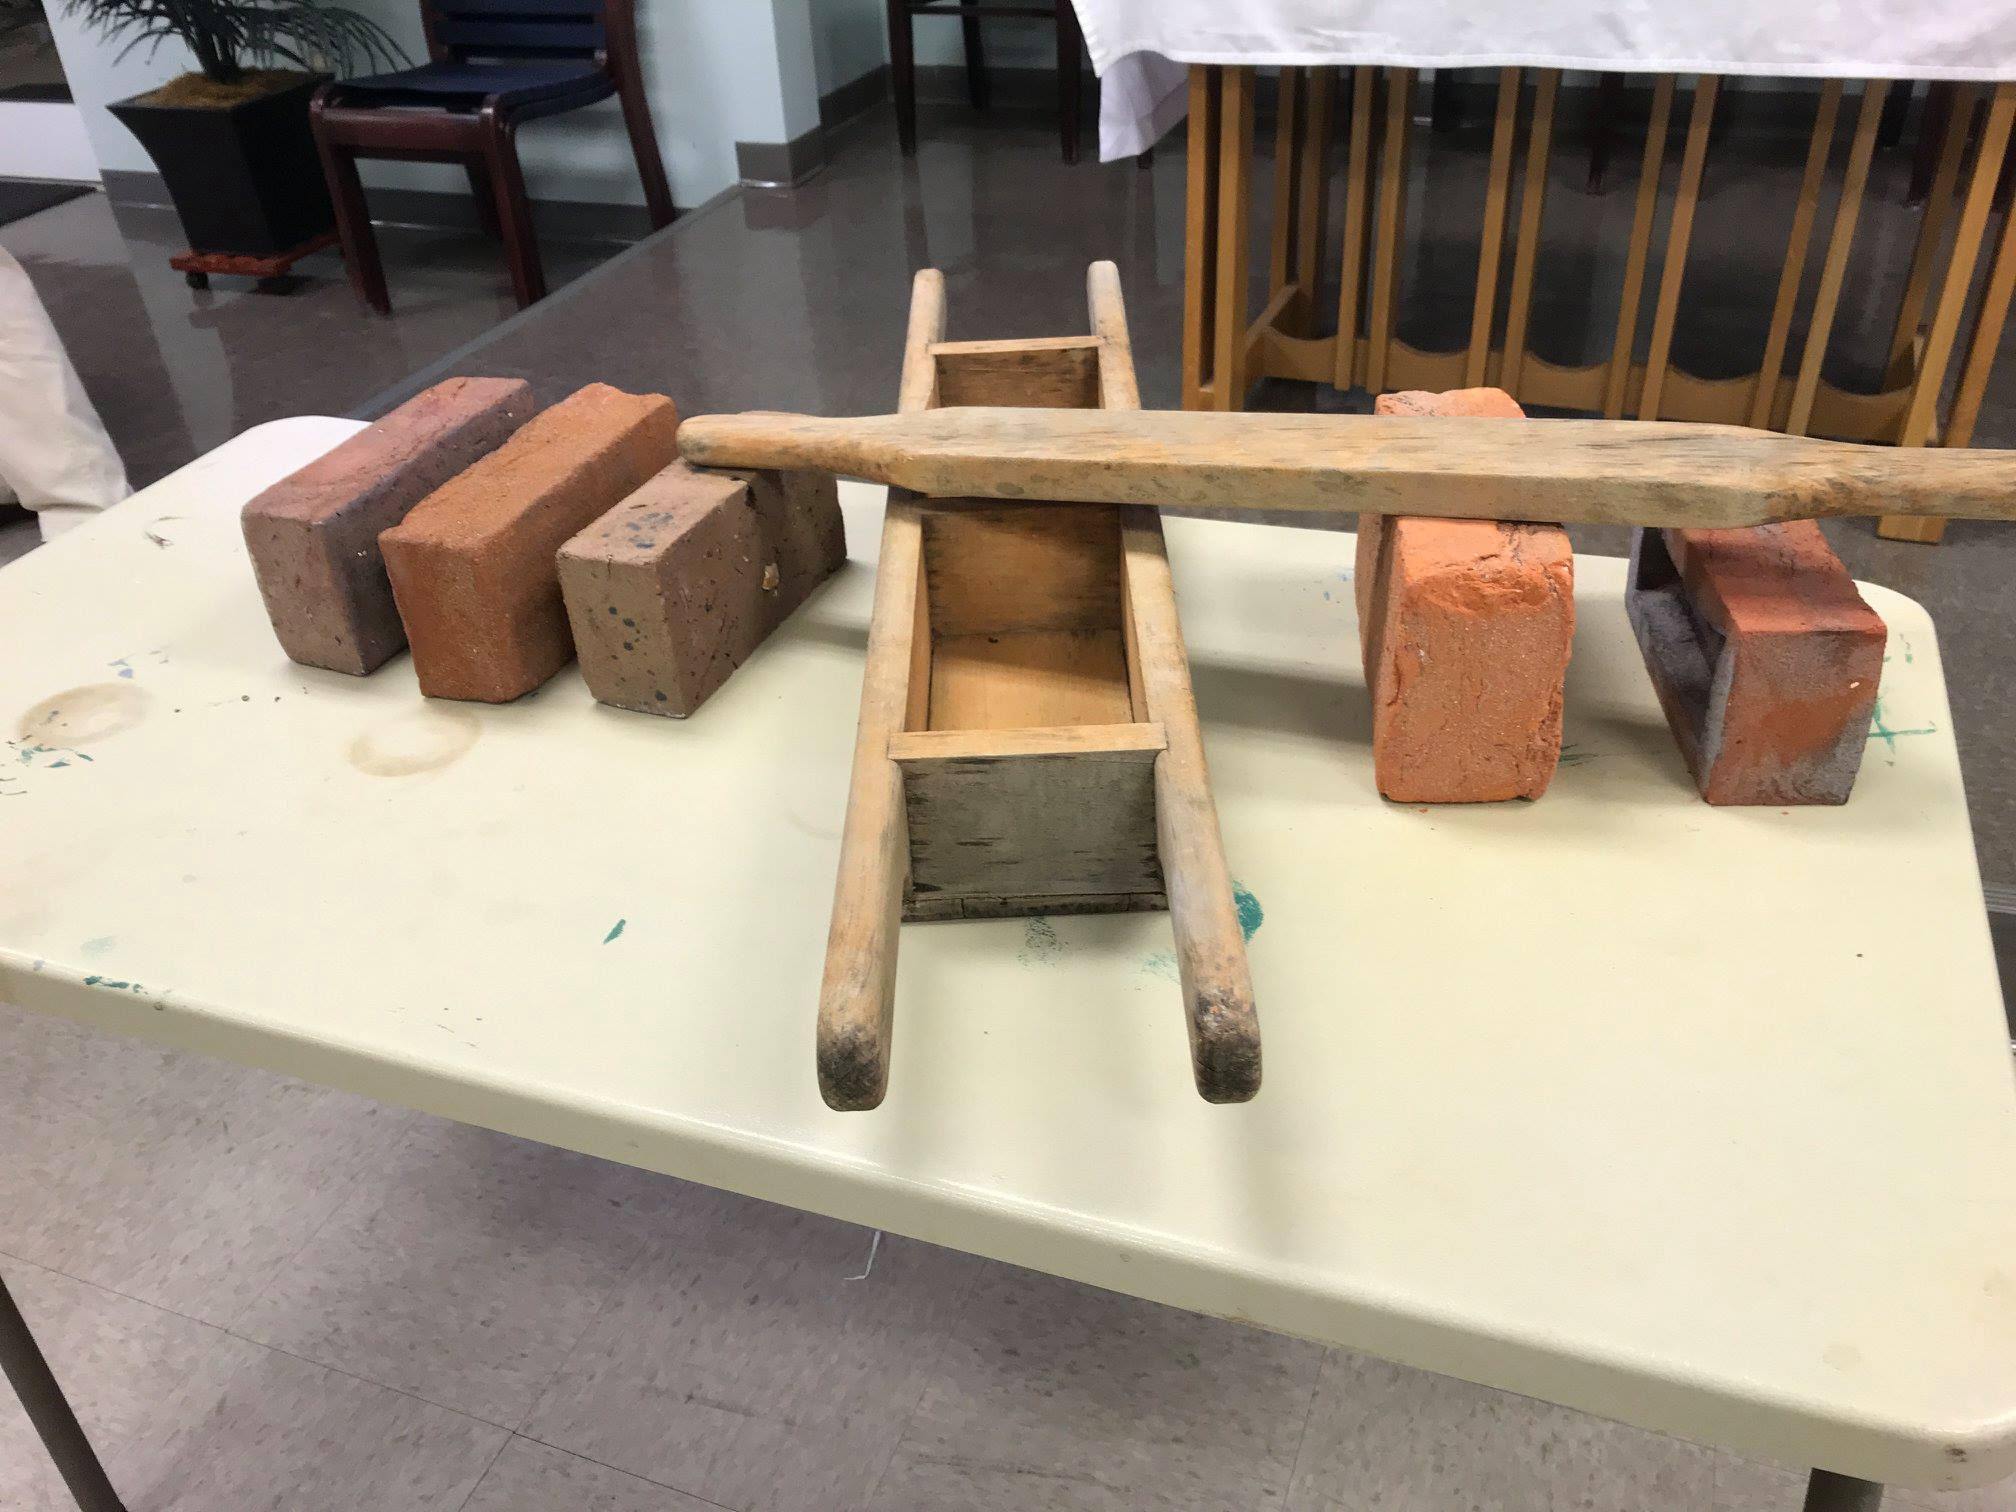 This wooden form, displayed at the recent DIHS meeting, is used to shape clay into bricks before they are fired.